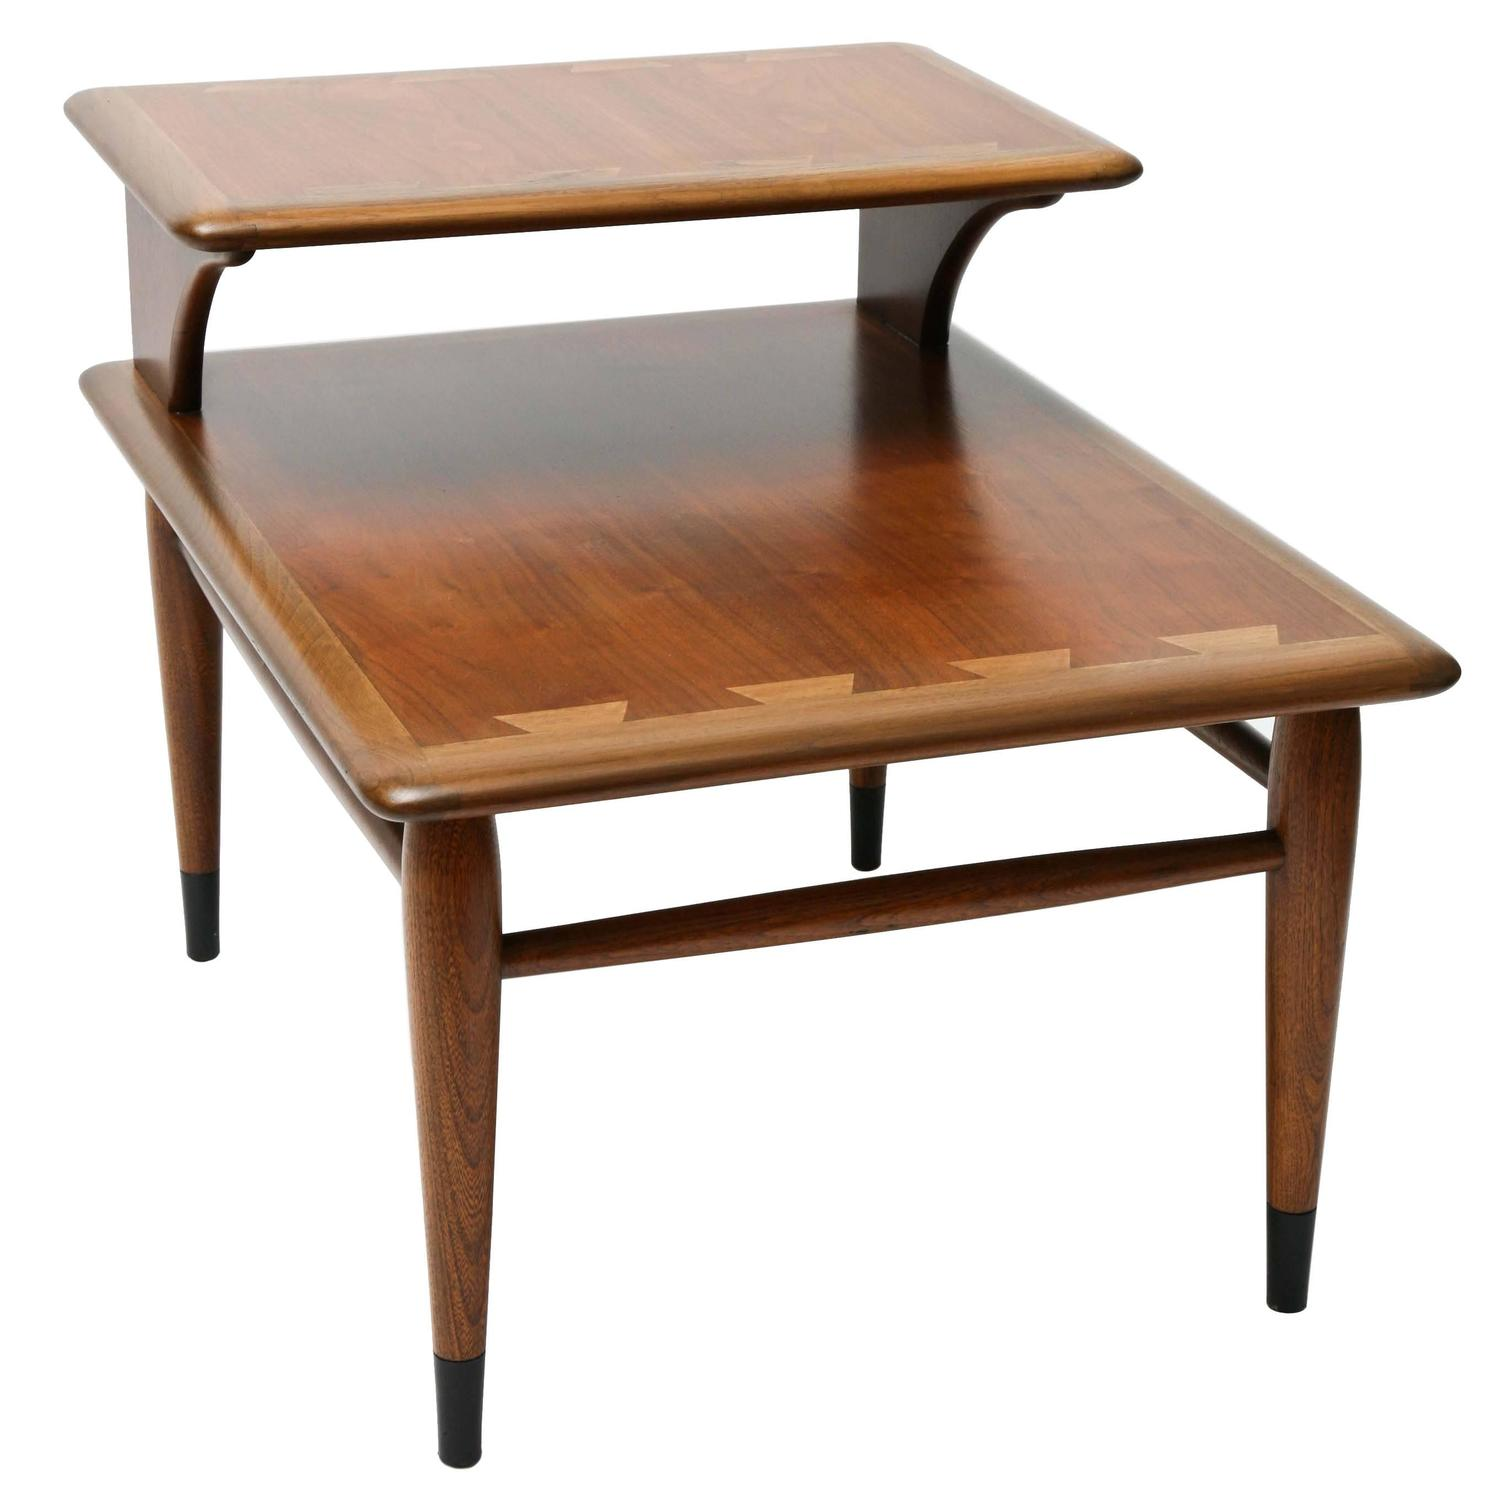 Lane Acclaim Series Coffee Table: Two-Tiered Lane Acclaim Series End Tables, 1960s, USA For